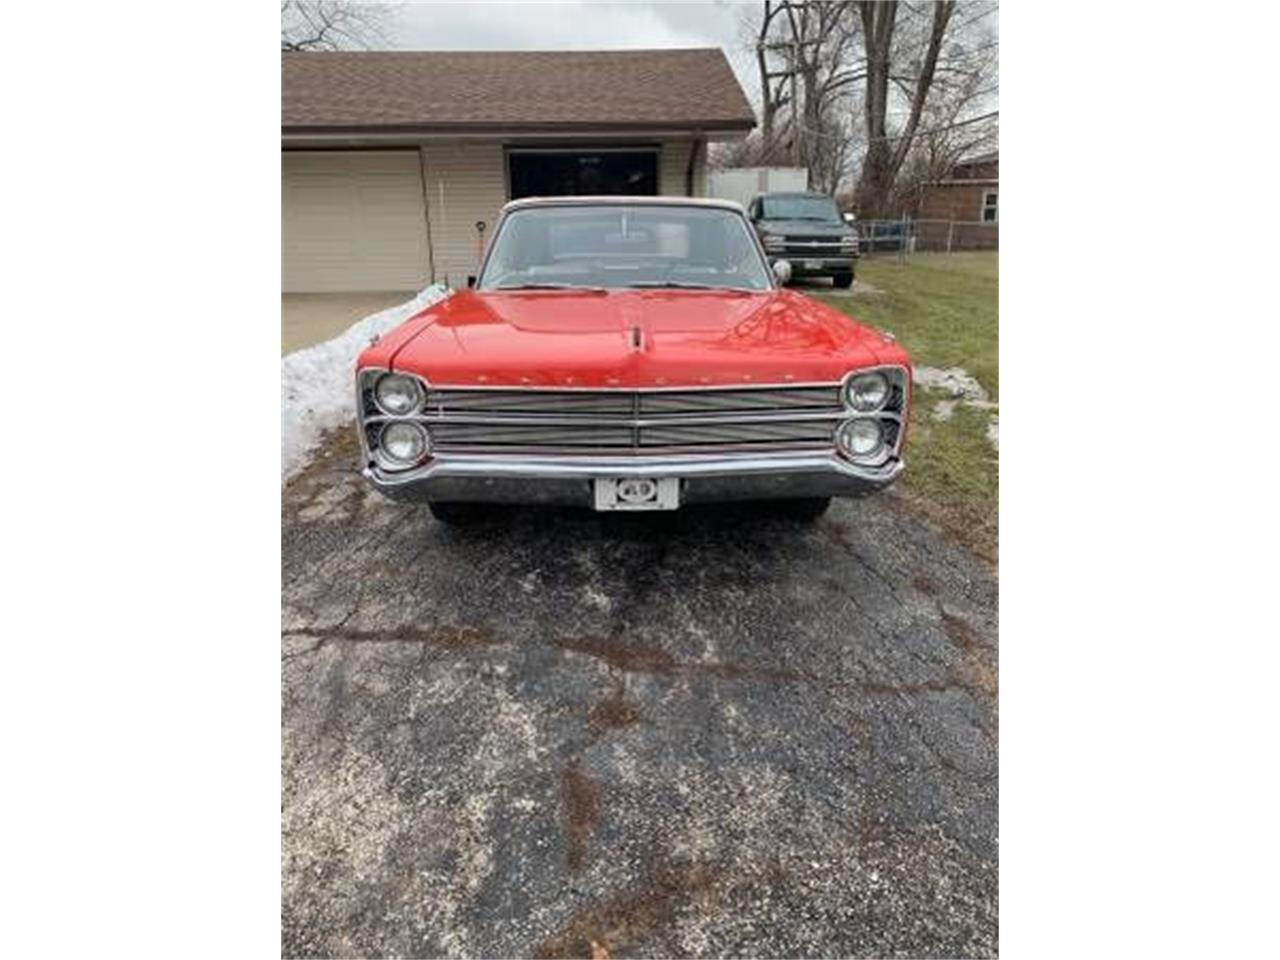 Large Picture of 1967 Sport Fury located in Michigan - $21,495.00 - PNBV